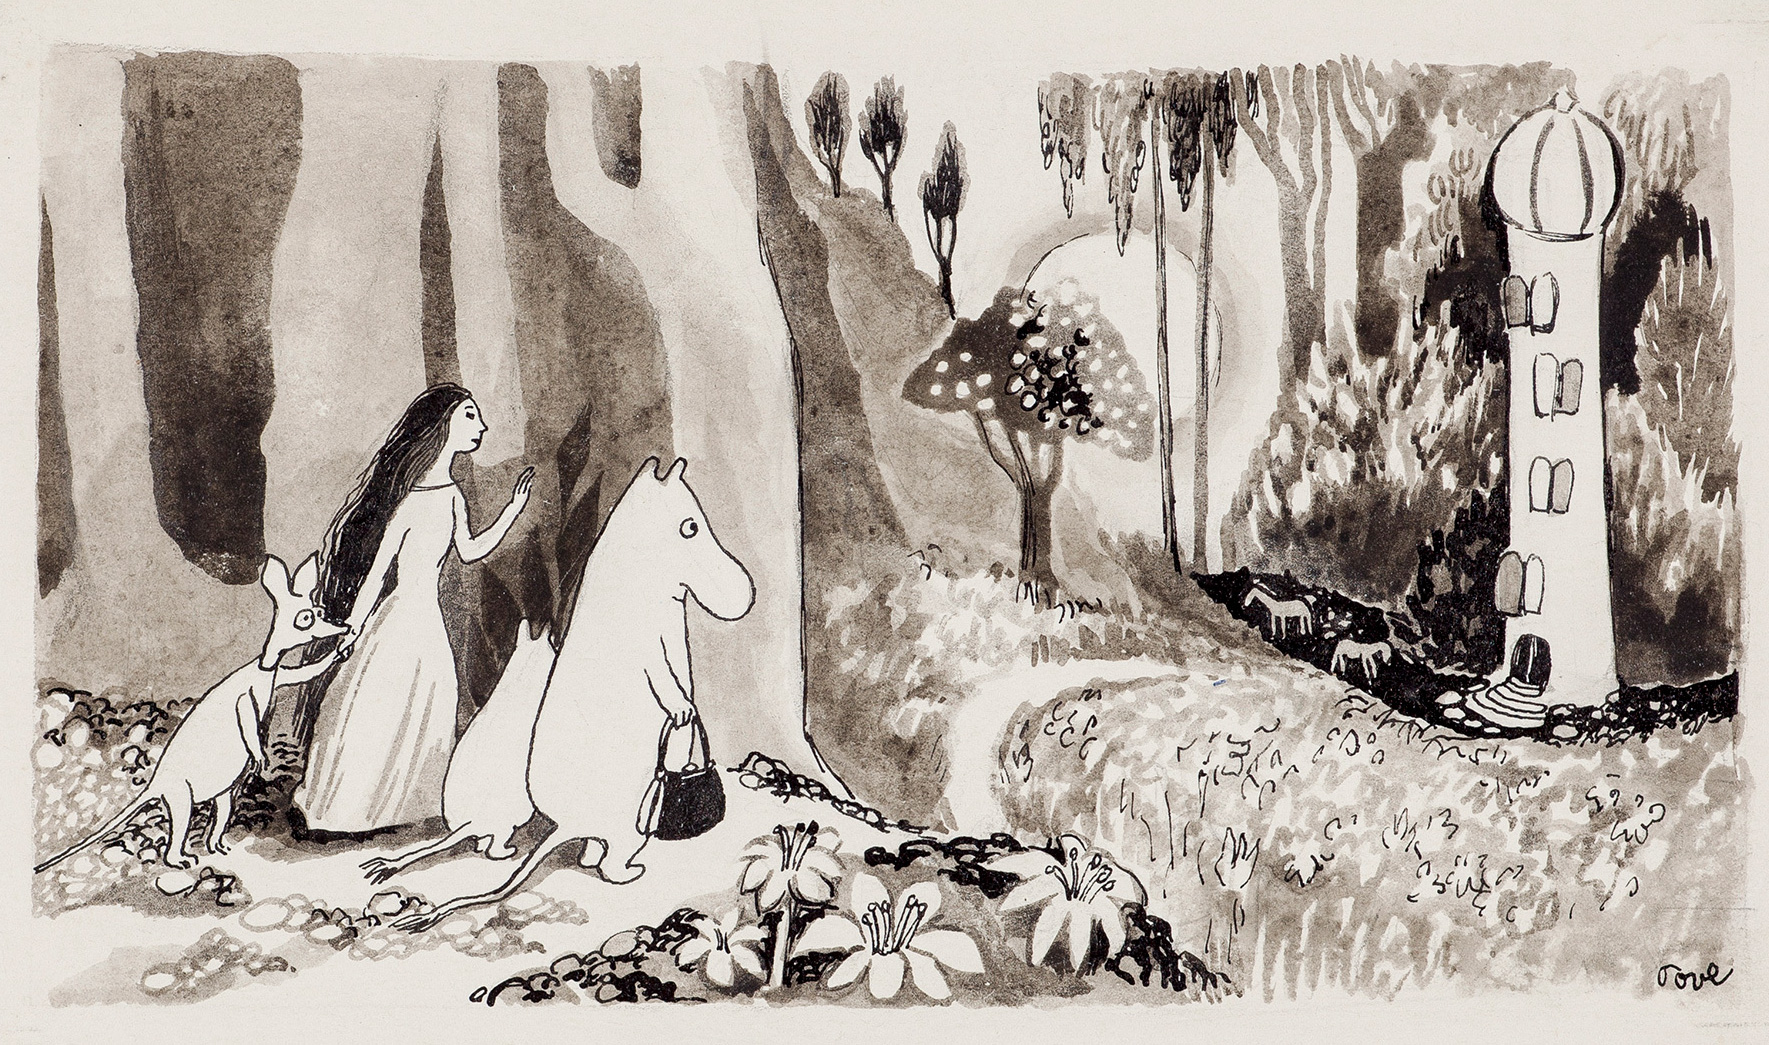 Inkwash painting by Tove Jansson, depicting Moominmamma, Moomintroll, Sniff, and Tulippa looking at the Moomin house